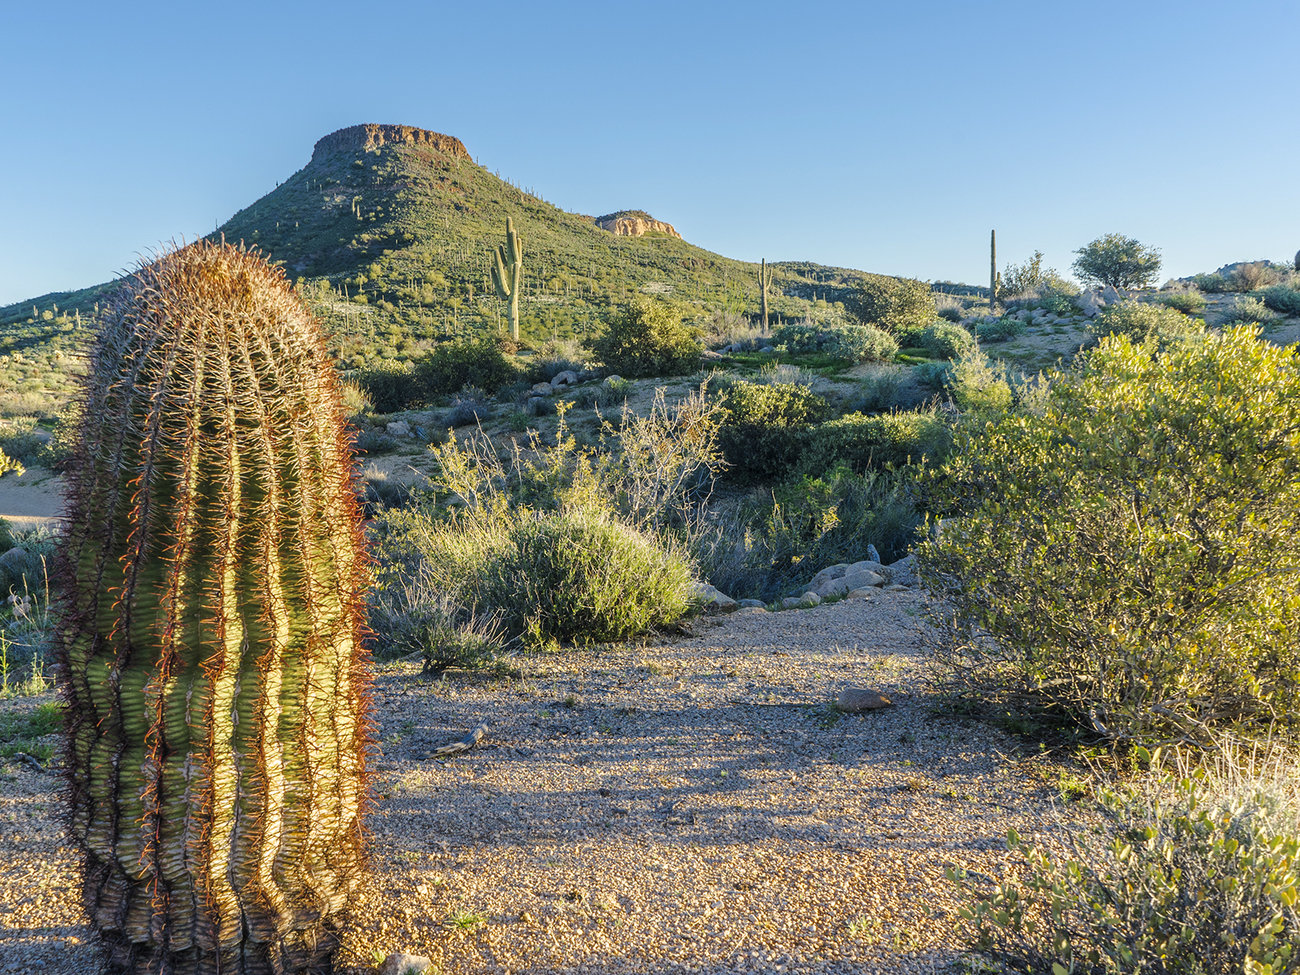 McDowell Sonoran Preserve in Scottsdale